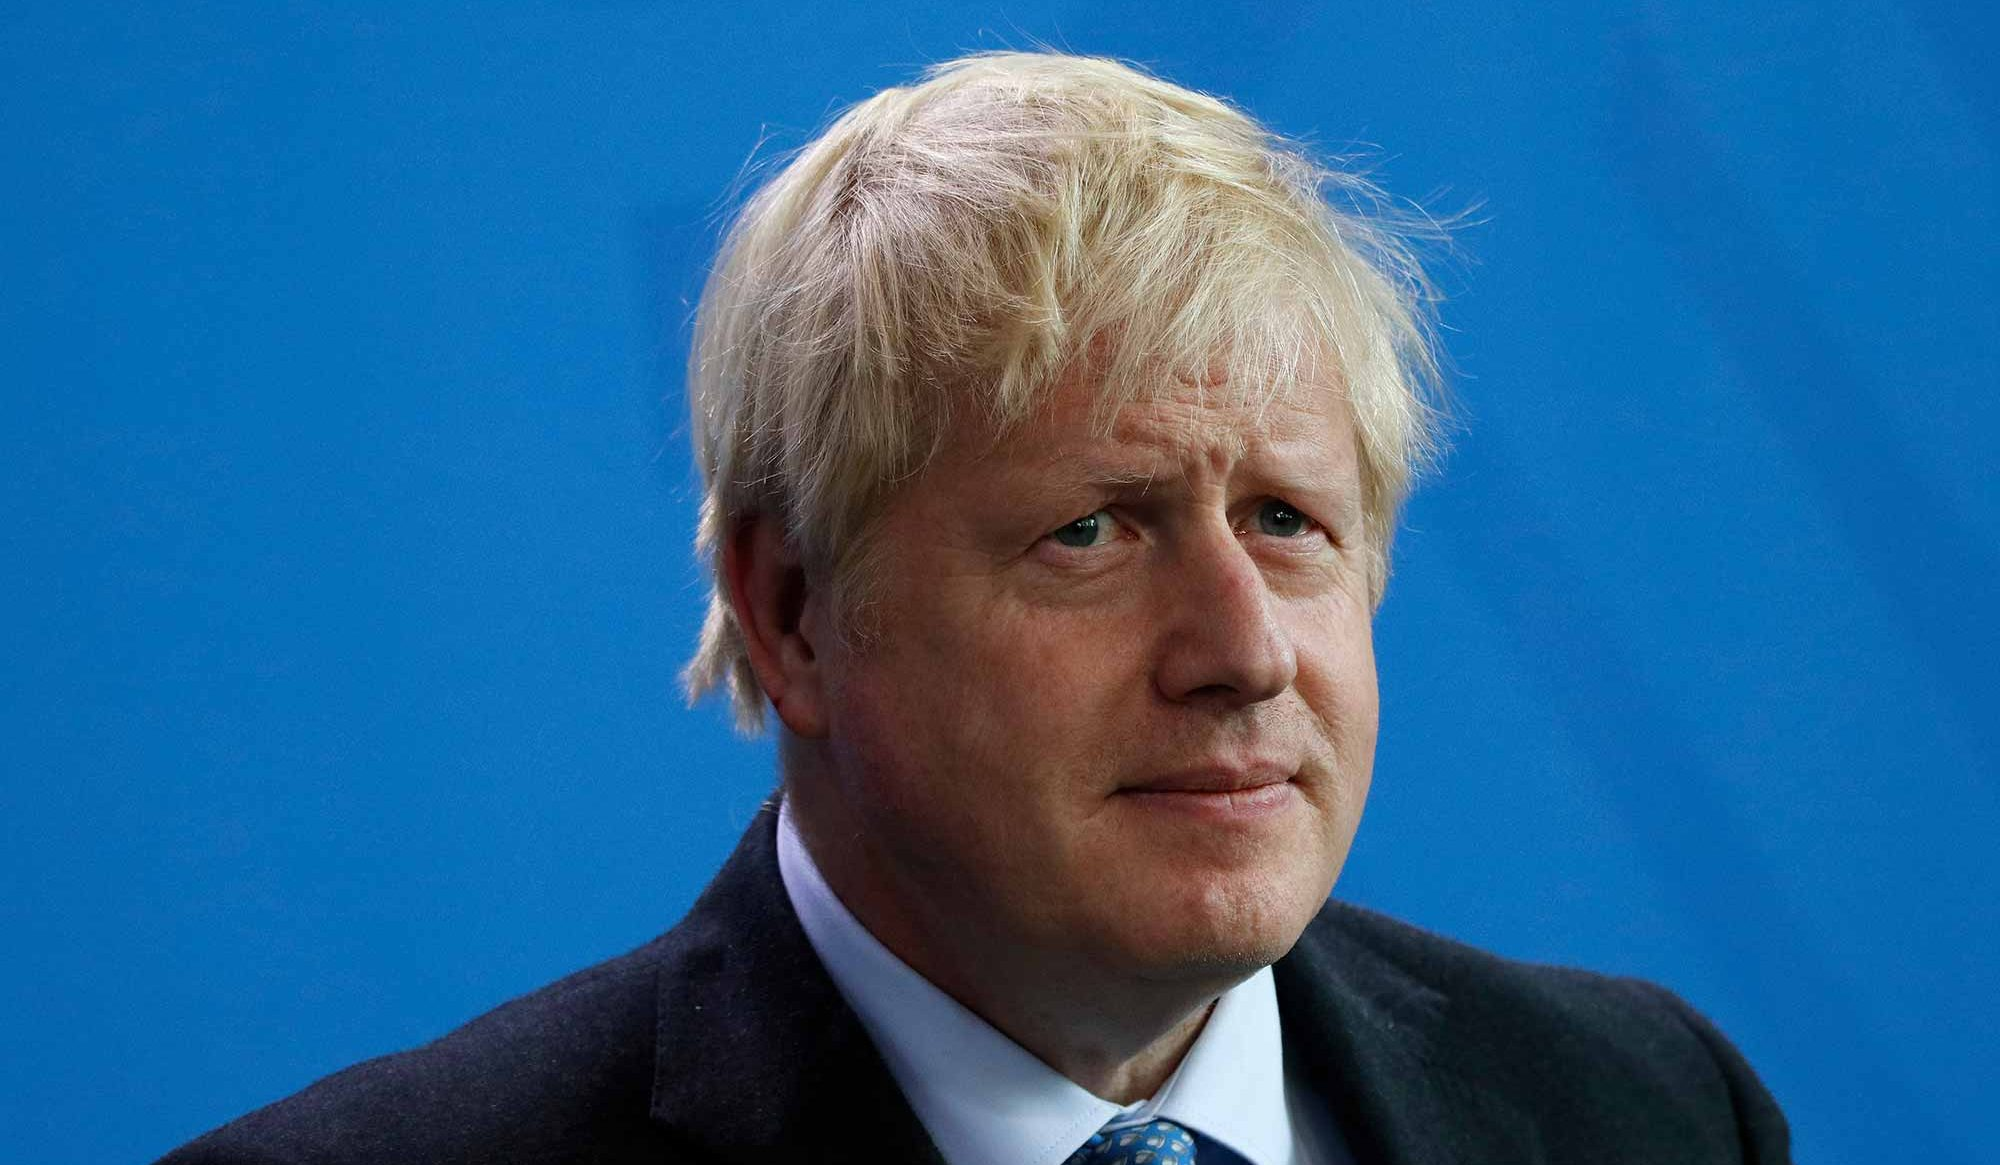 Prime Minister Boris Johnson will reportedly ramp up strategies to drive down obesity rates after suggesting his own weight was a key reason why he fell ill with COVID-19